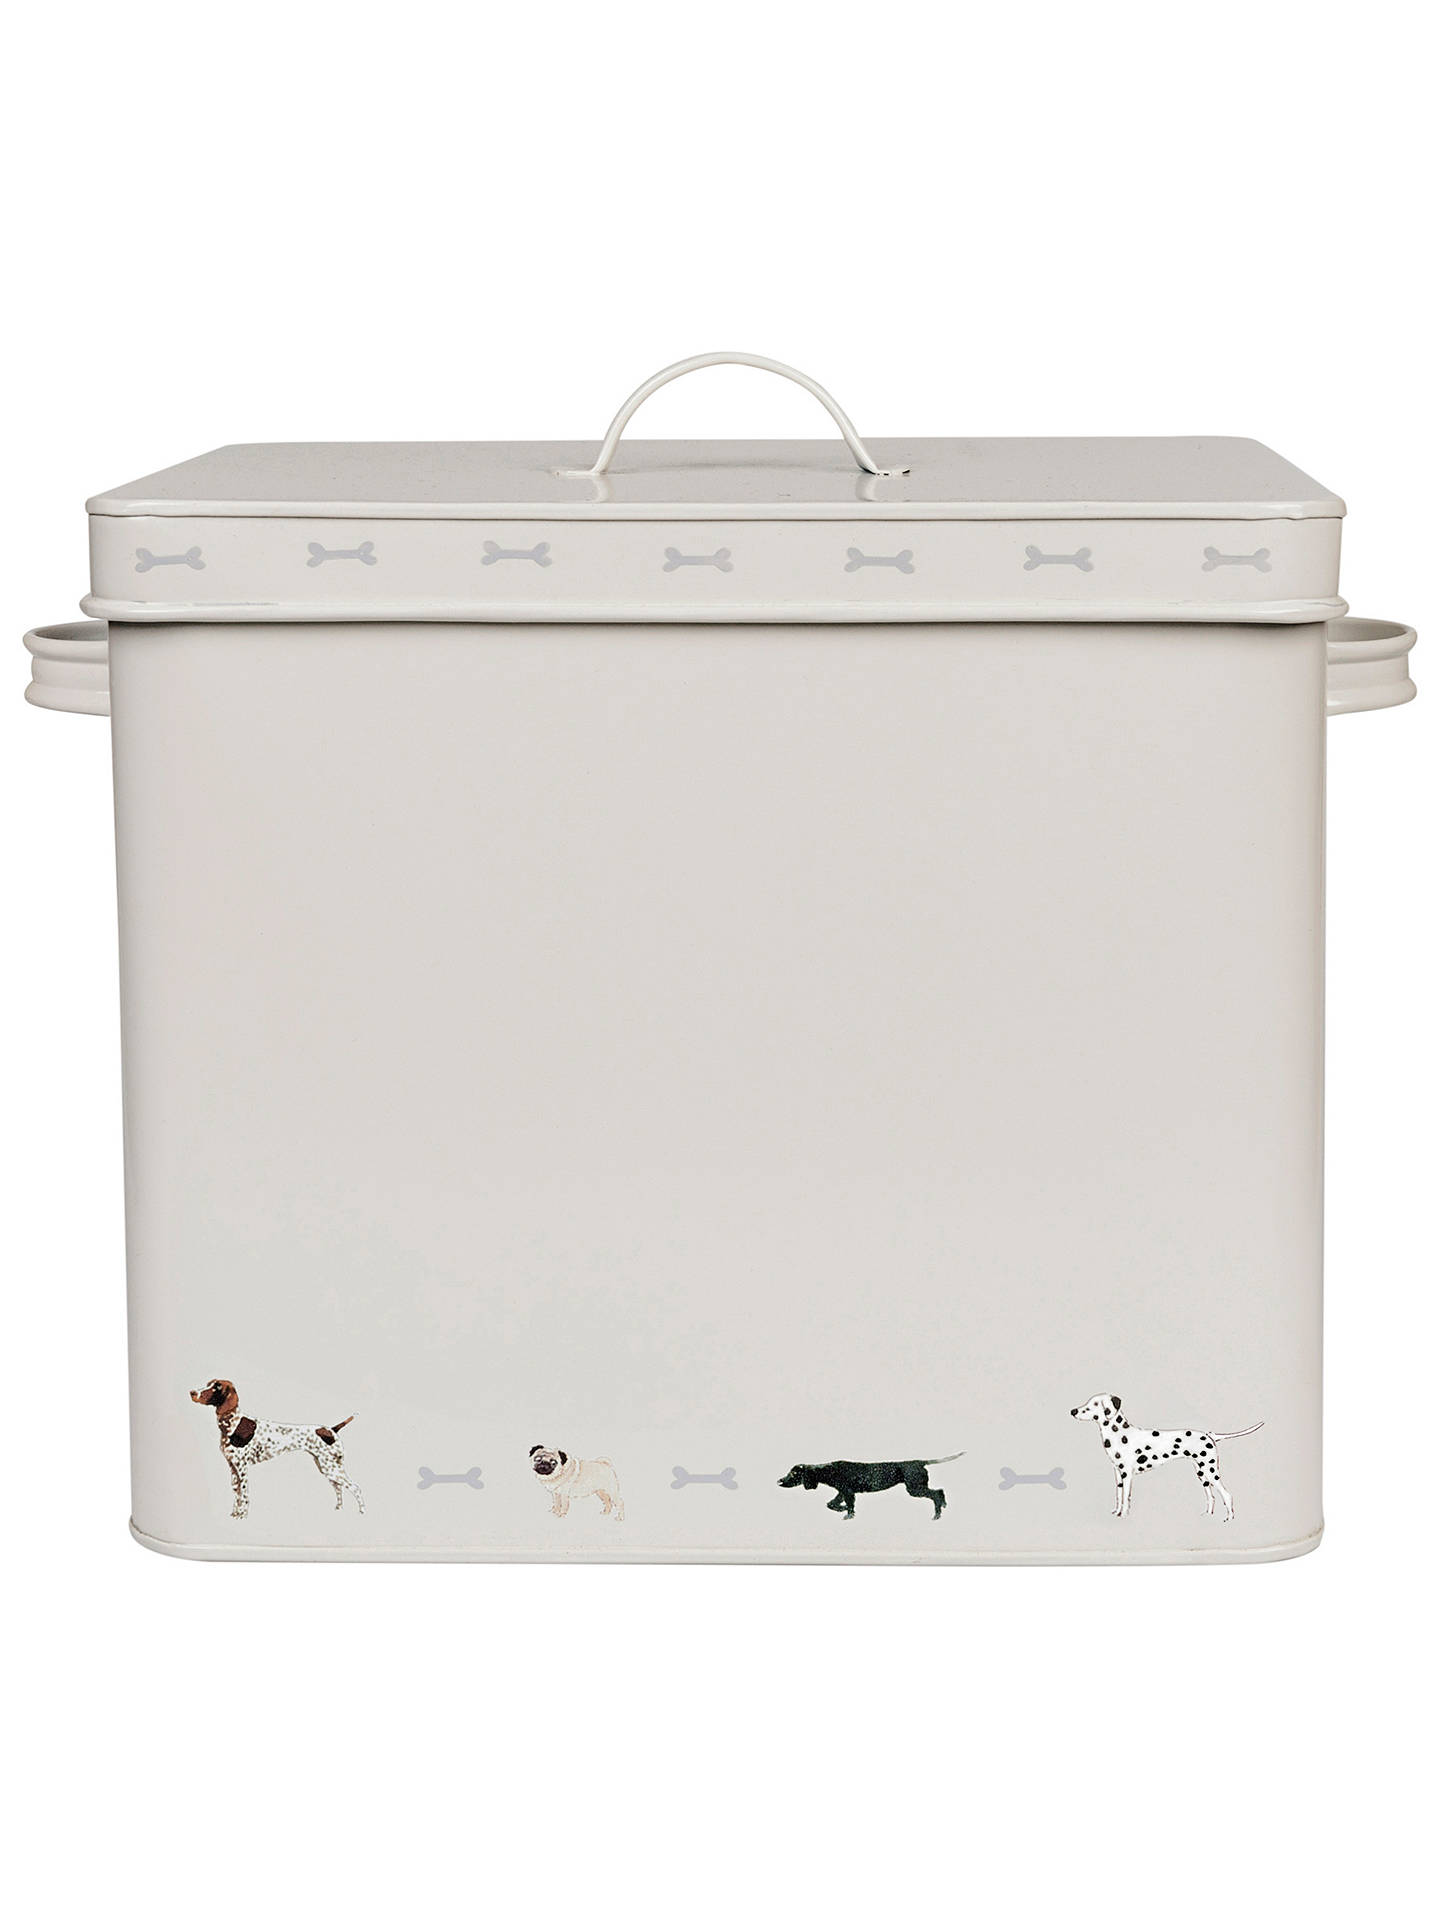 BuySophie Allport Woof Pet Treats Tin Online at johnlewis.com